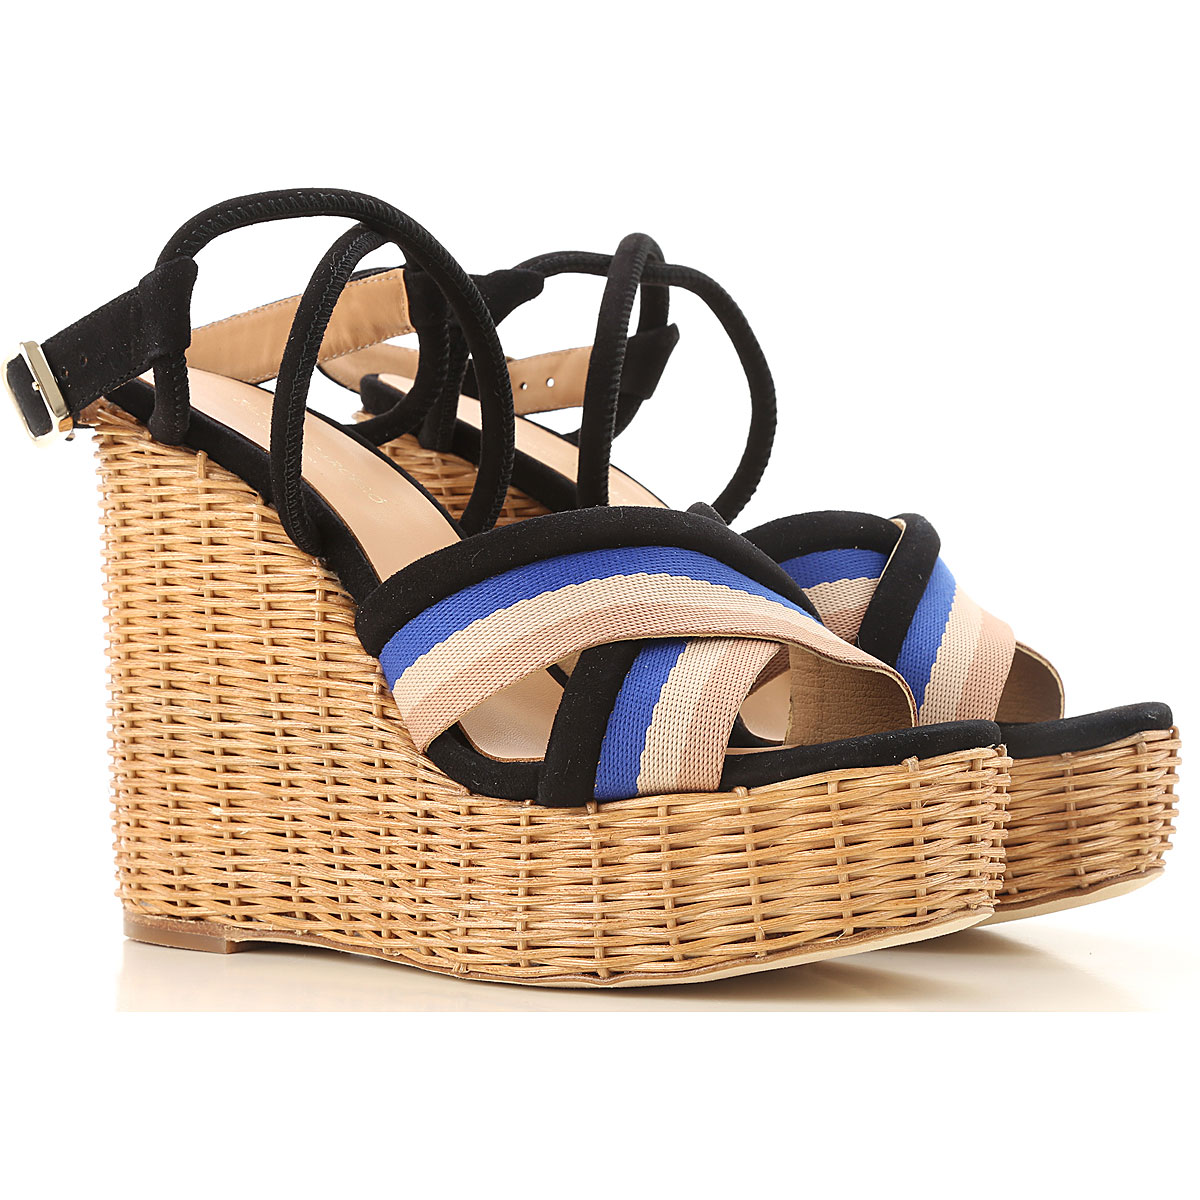 Paloma Barcelo Wedges for Women Black USA - GOOFASH